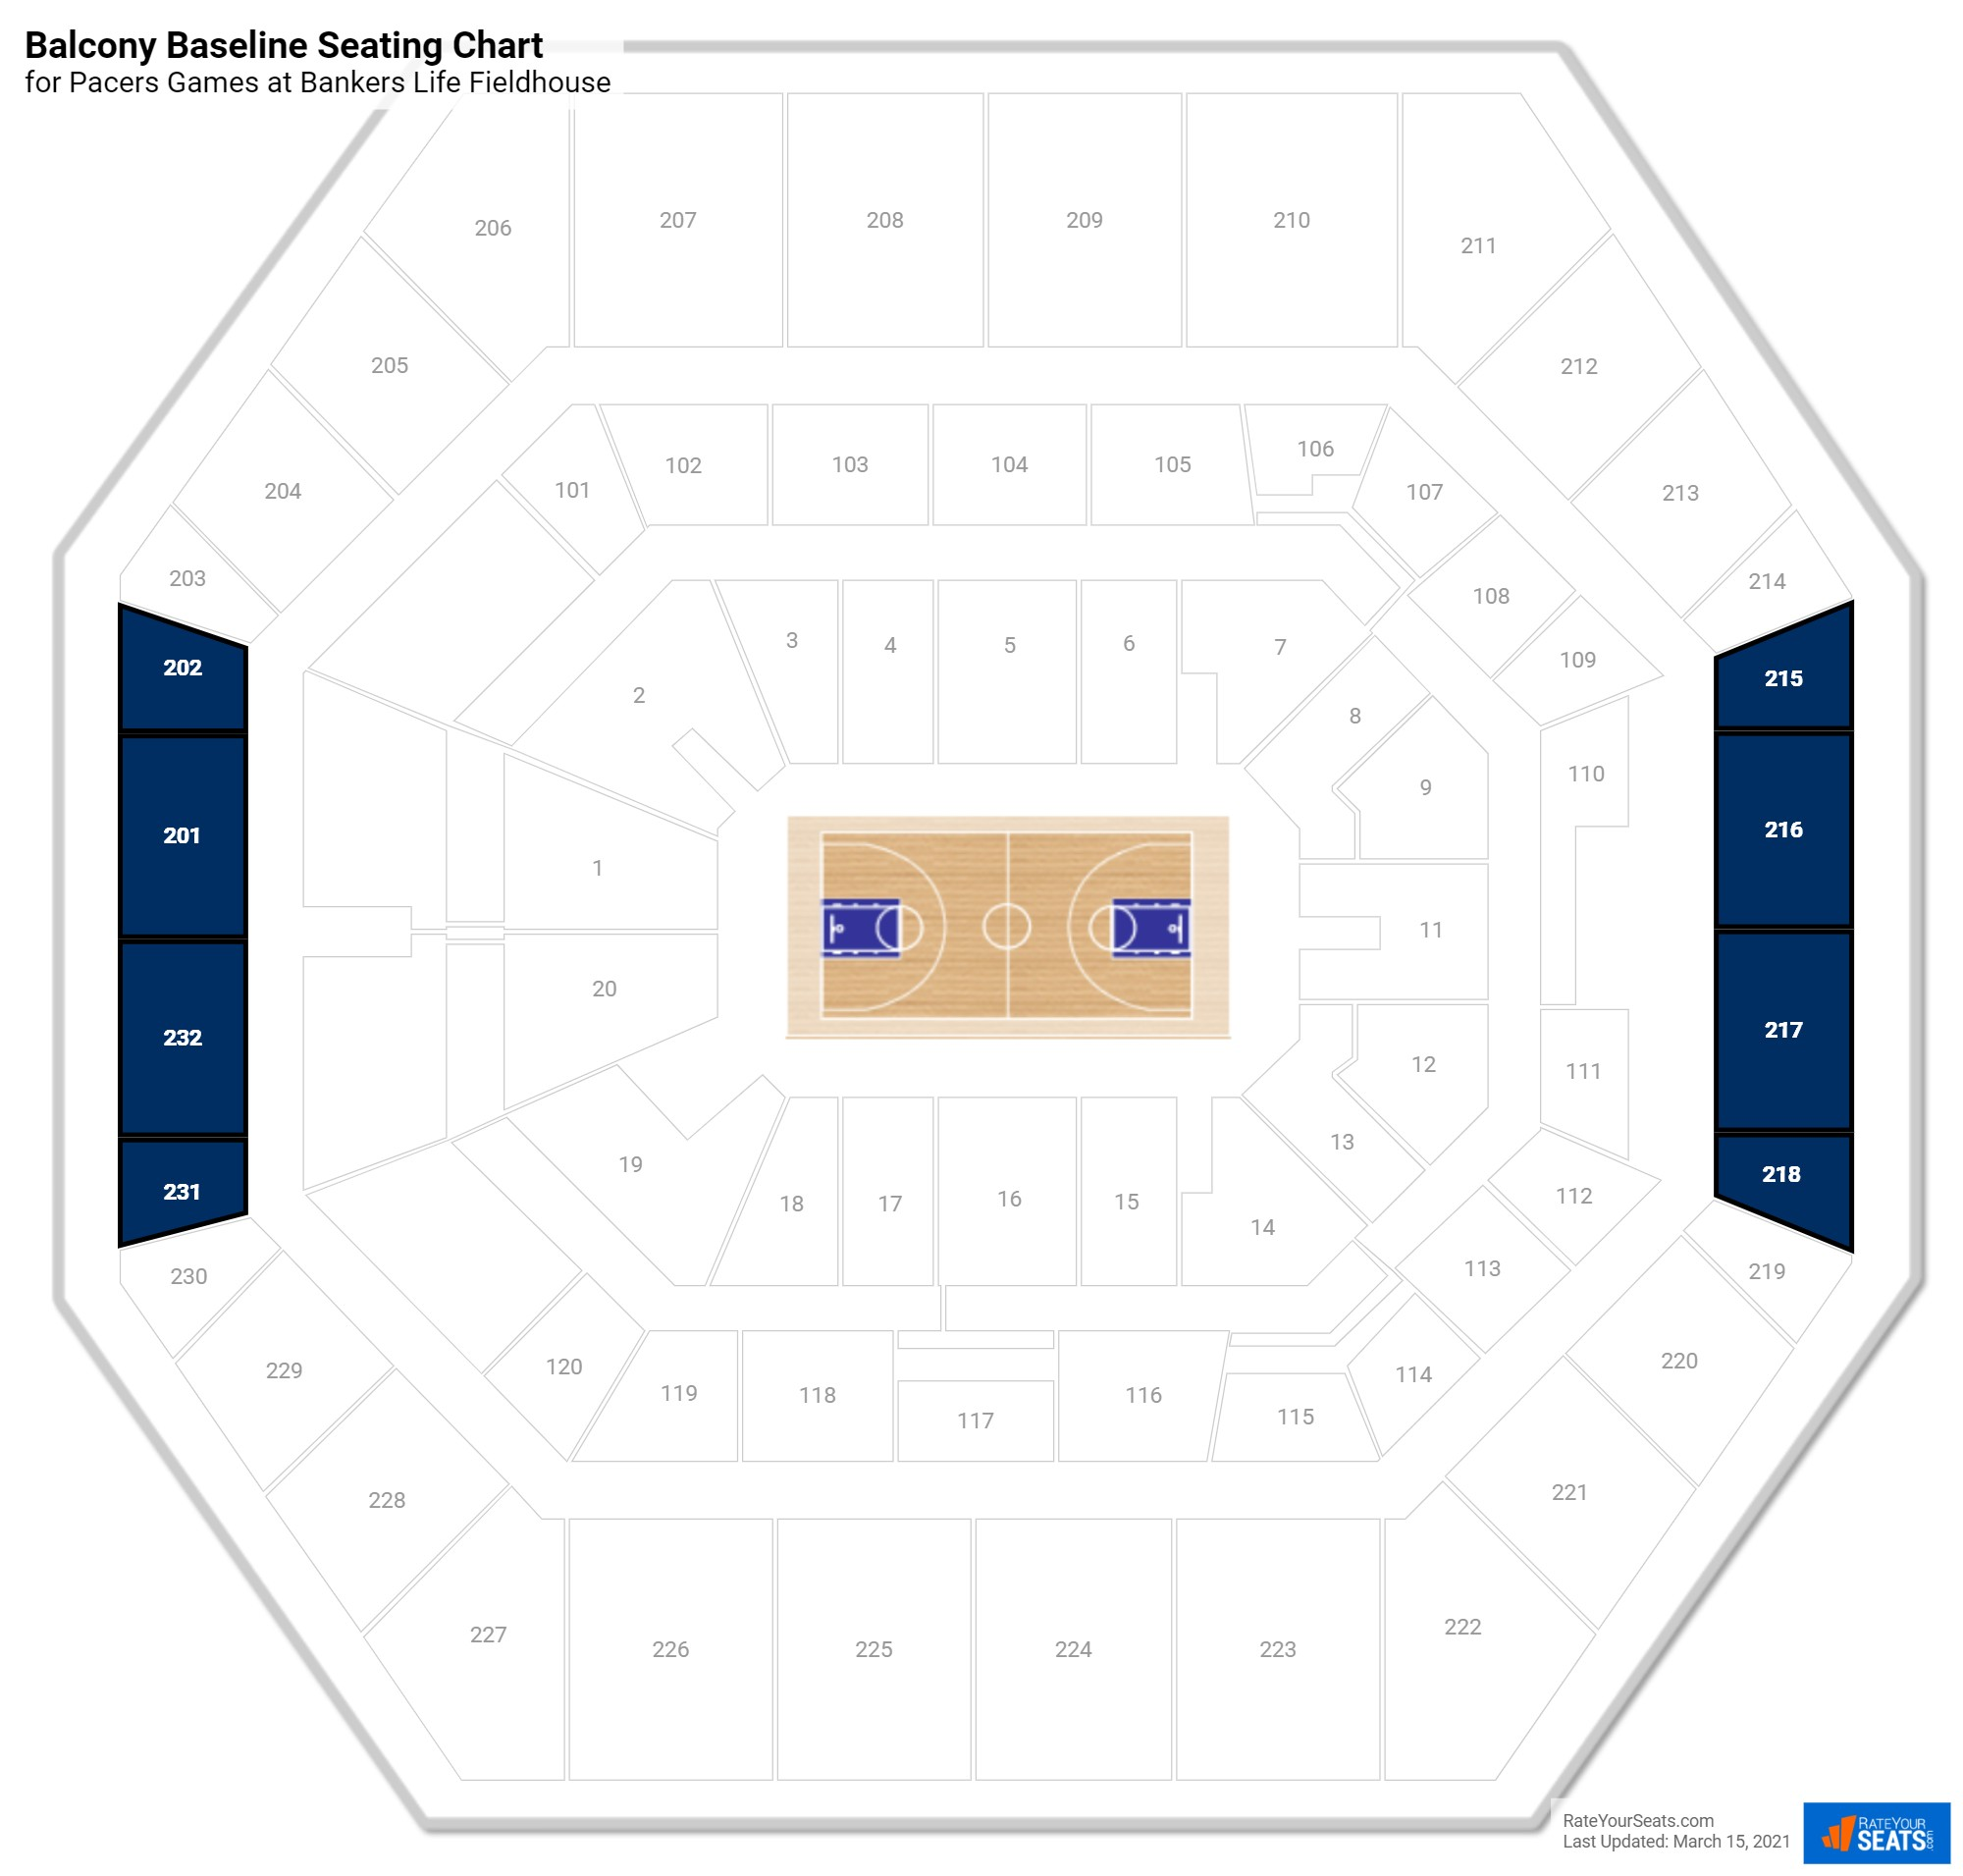 Bankers Life Fieldhouse Balcony Baseline seating chart